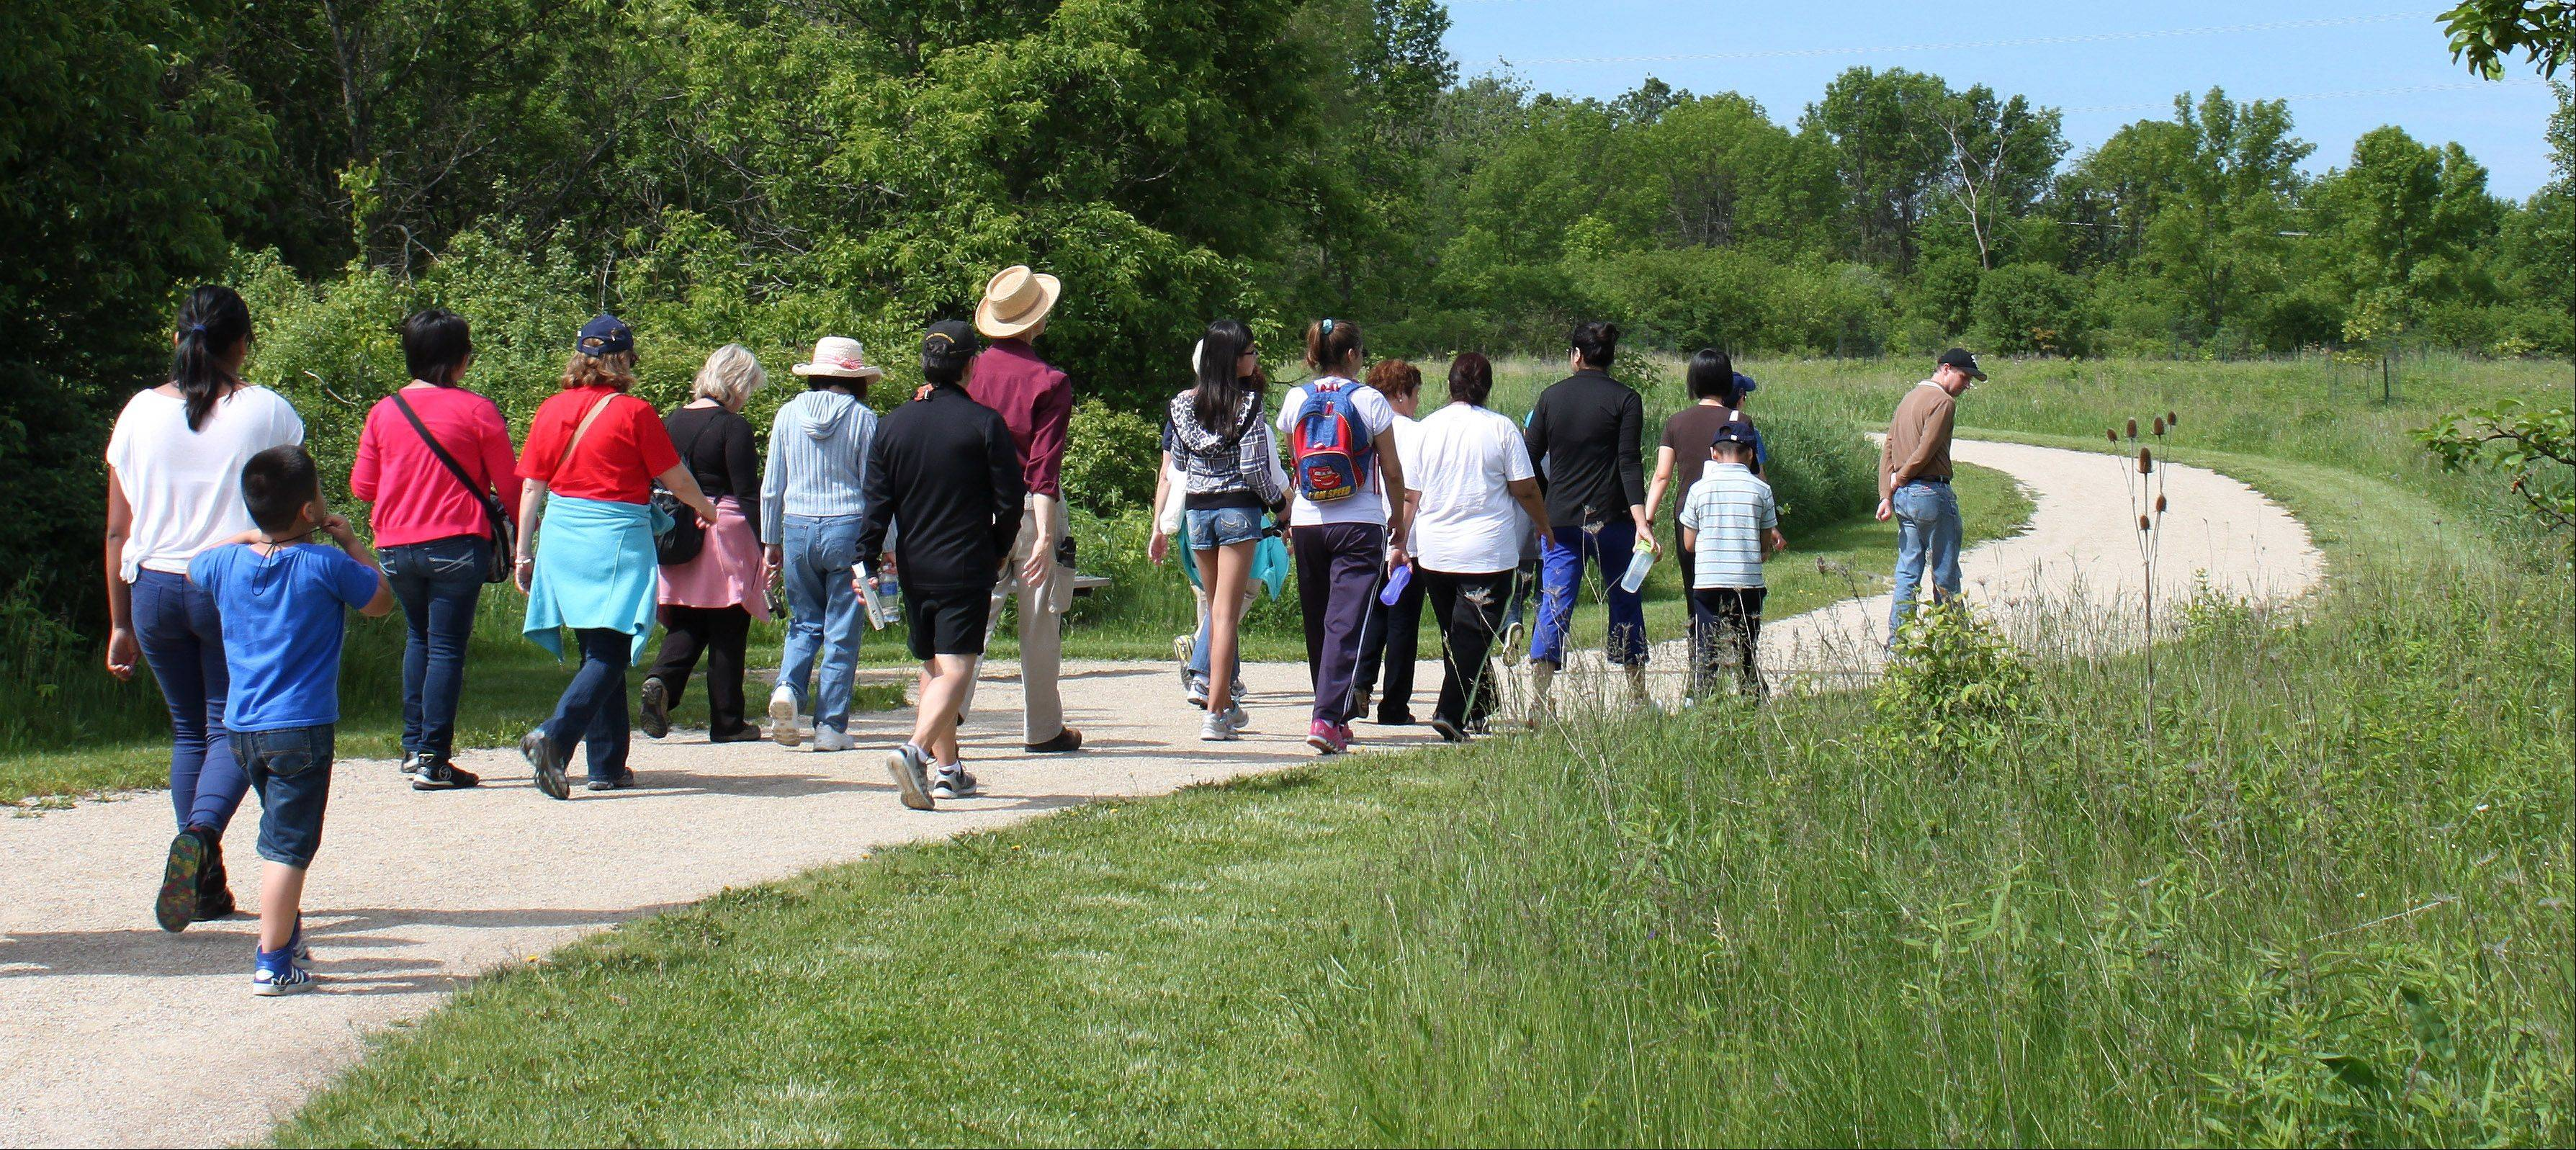 One recent bilingual guided nature hike toured Sun Lake Forest Preserve near Lake Villa. The hikes are sponsored by Friends of Ryerson Woods and Lake County Forest Preserve District with help from several community partners.